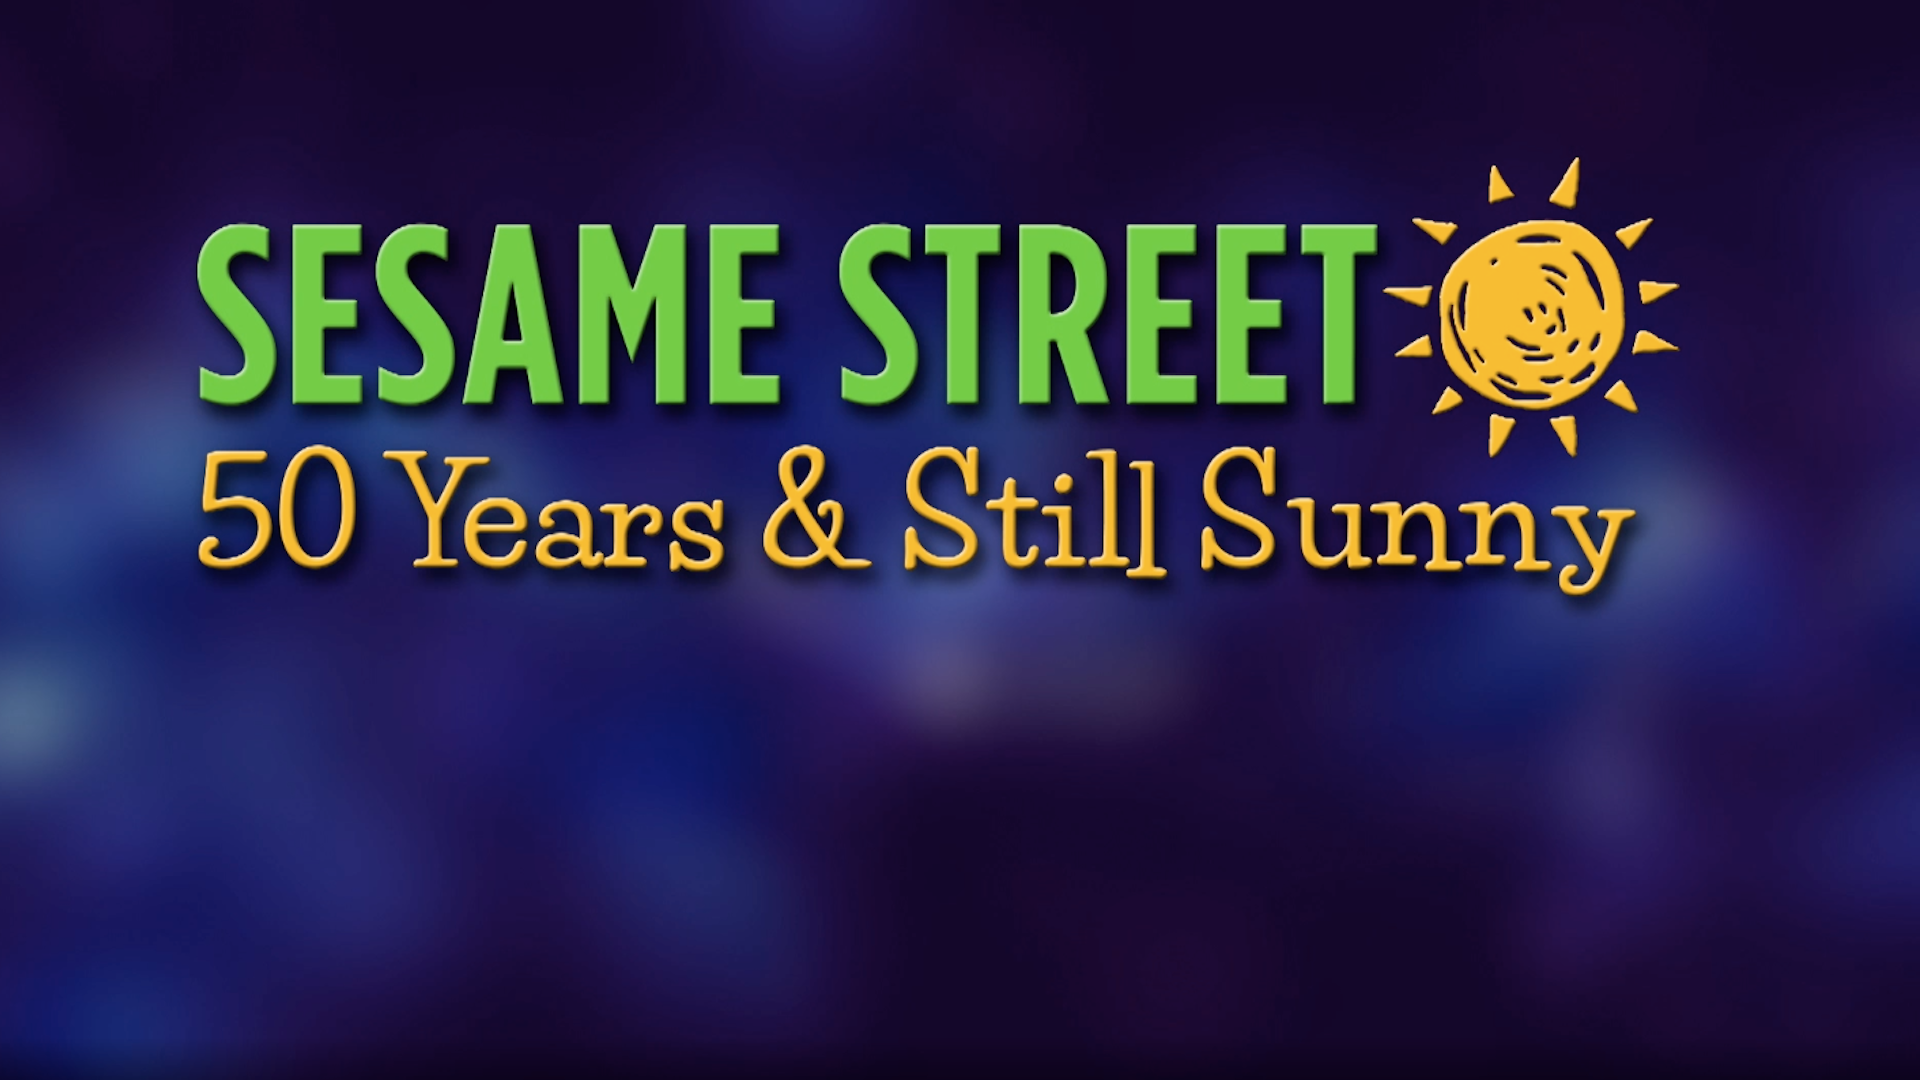 Sesame Street: 50 Years & Still Sunny! | Preview